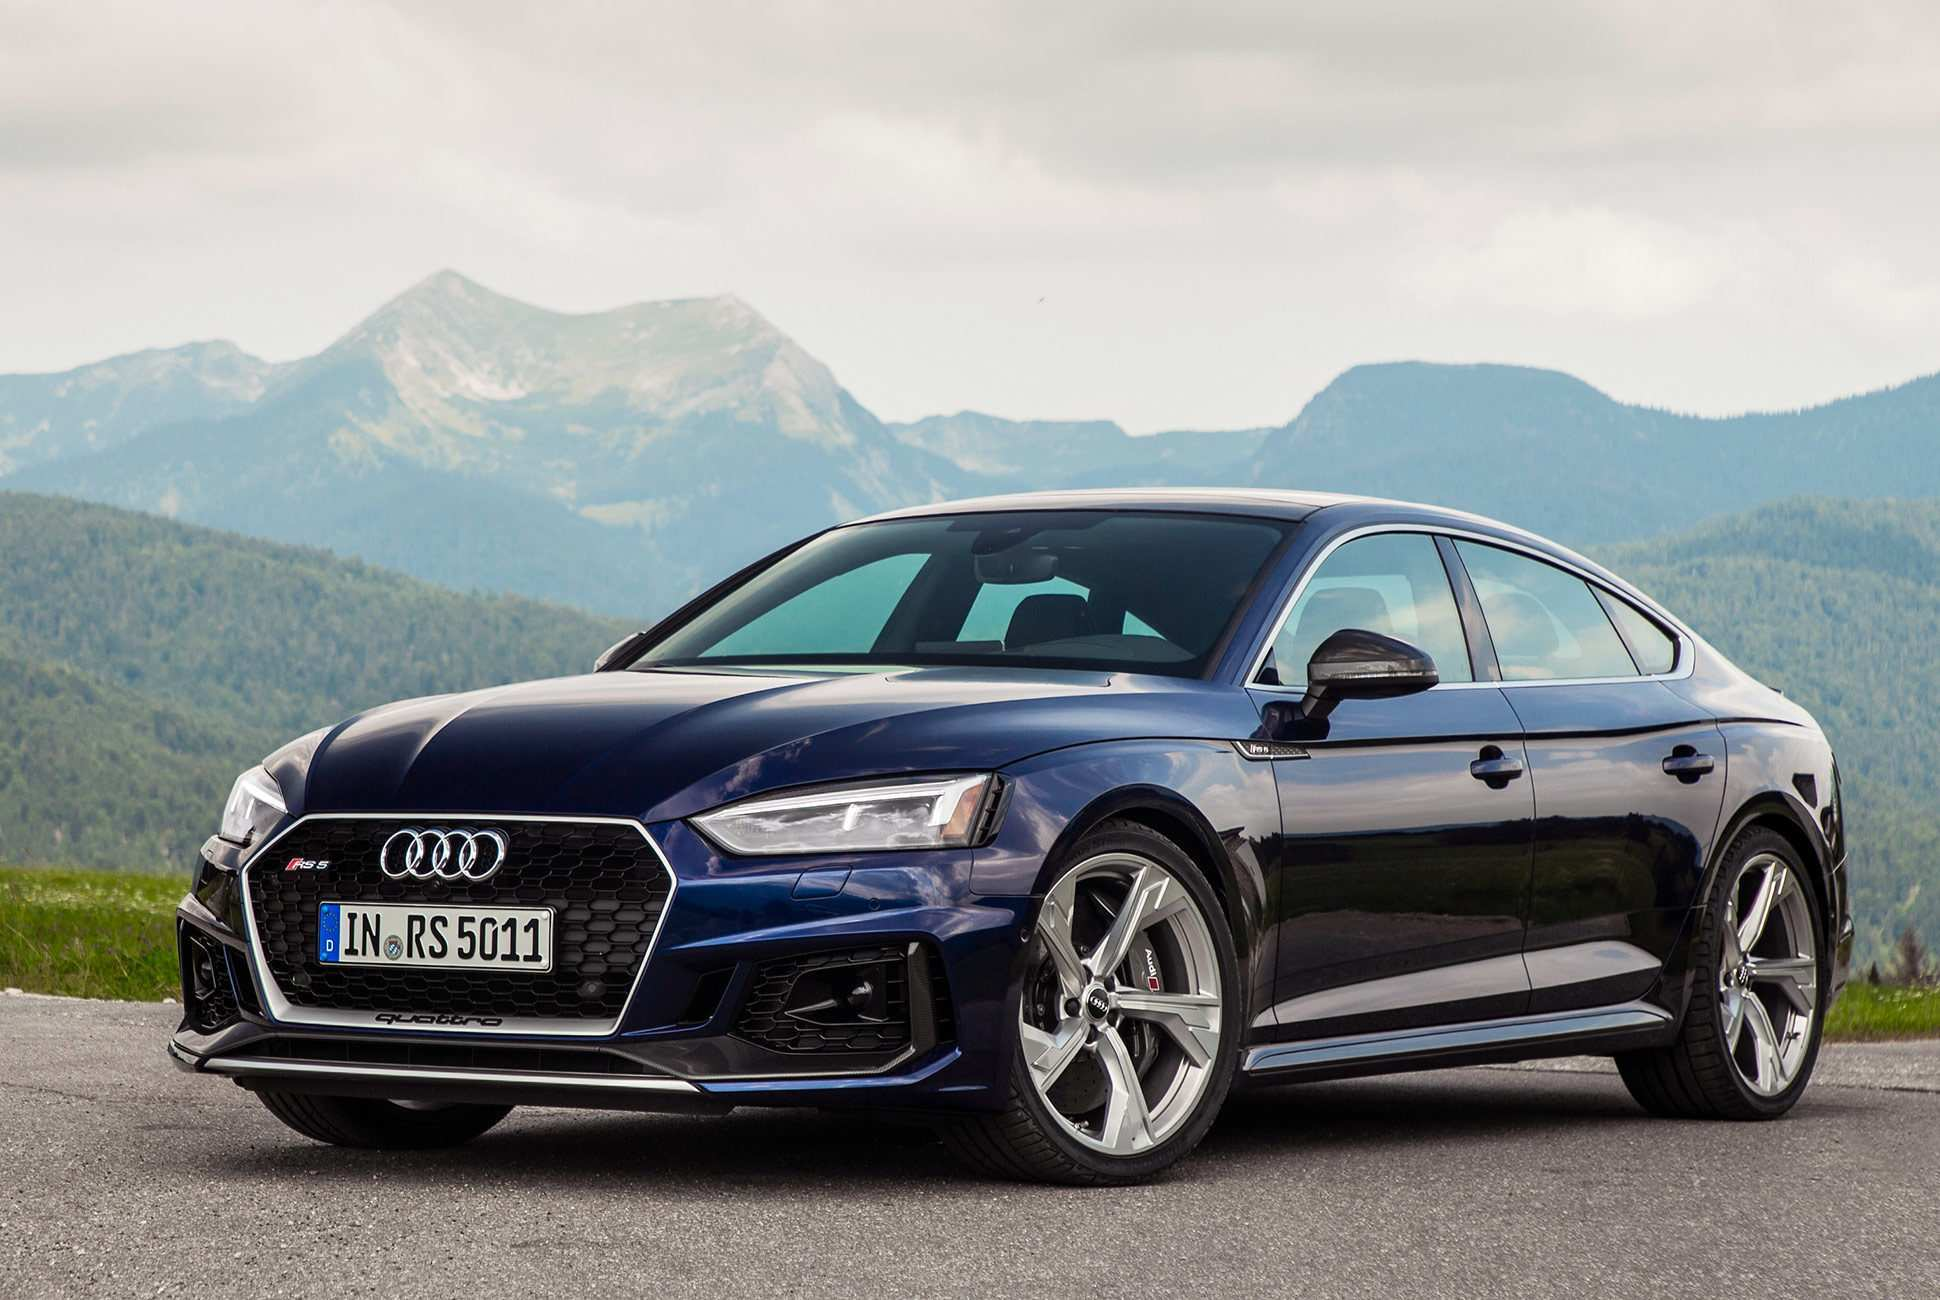 41 All New 2019 Audi Rs5 Specs